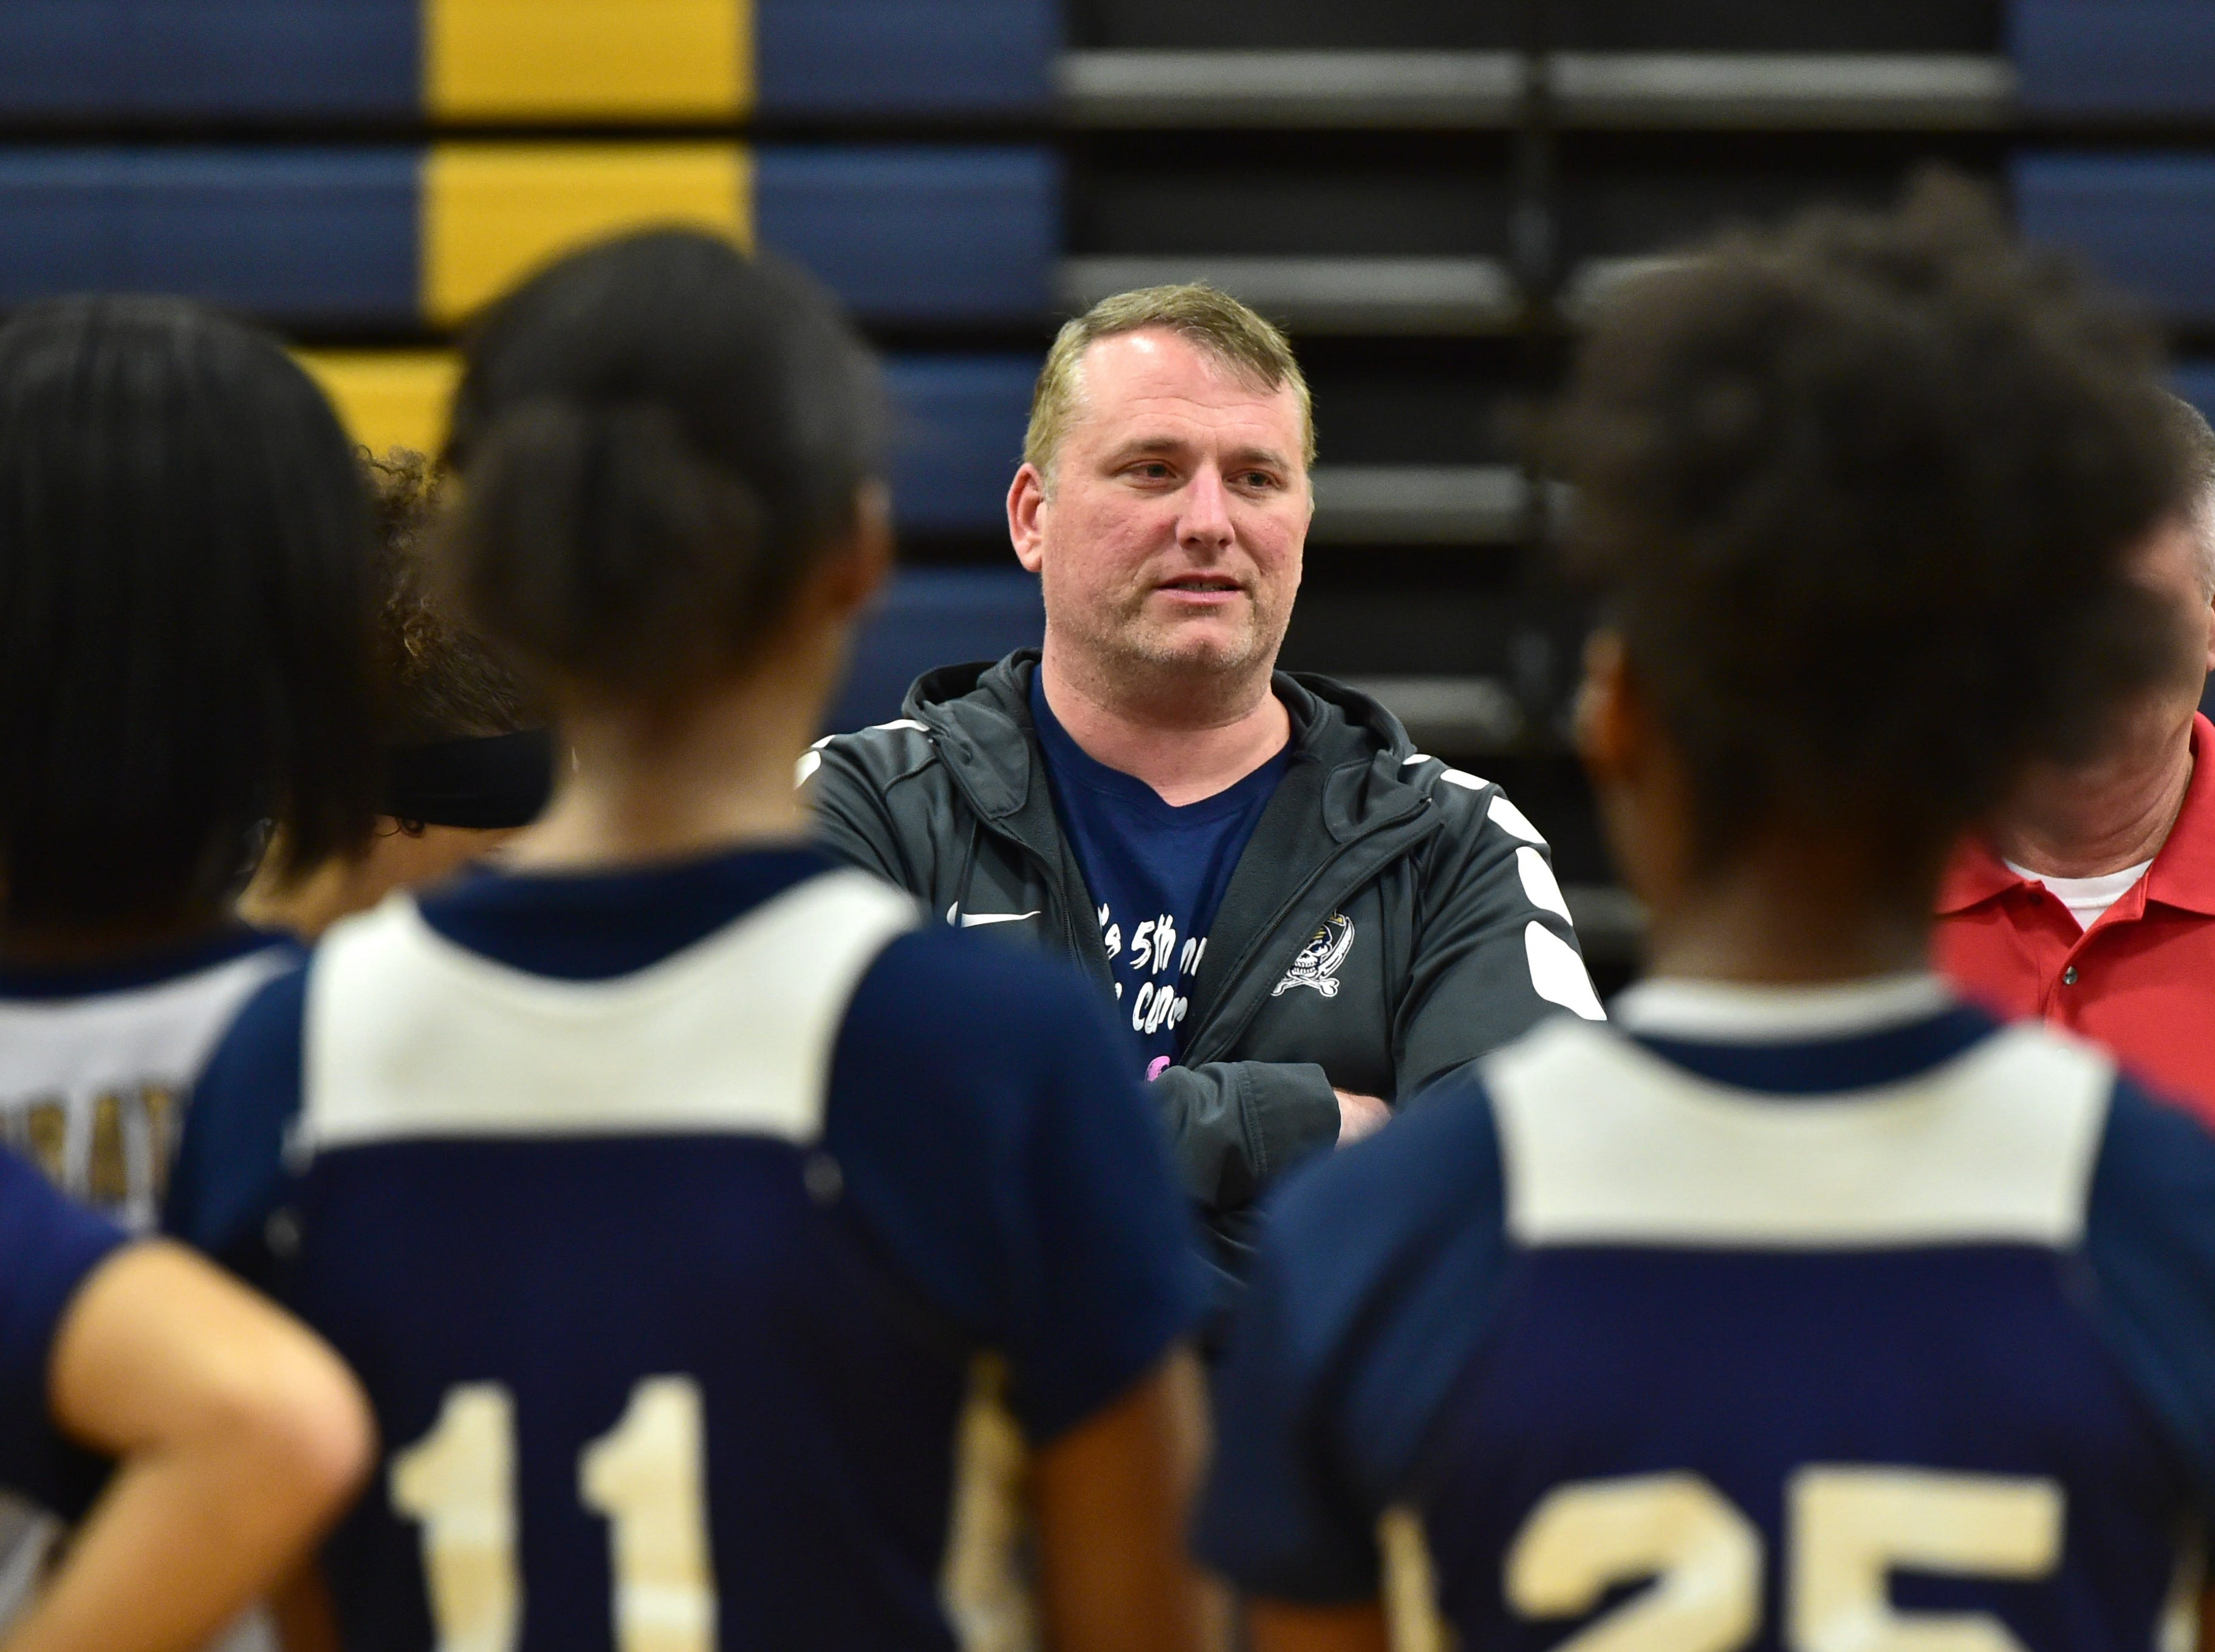 Pearl High School acting girls basketball head coach Jason Kennedy coaches his varsity team while Kennedy's wife and head coach Lacey Kennedy is deployed overseas with the Army reserve. Thursday, Feb. 21, 2019.